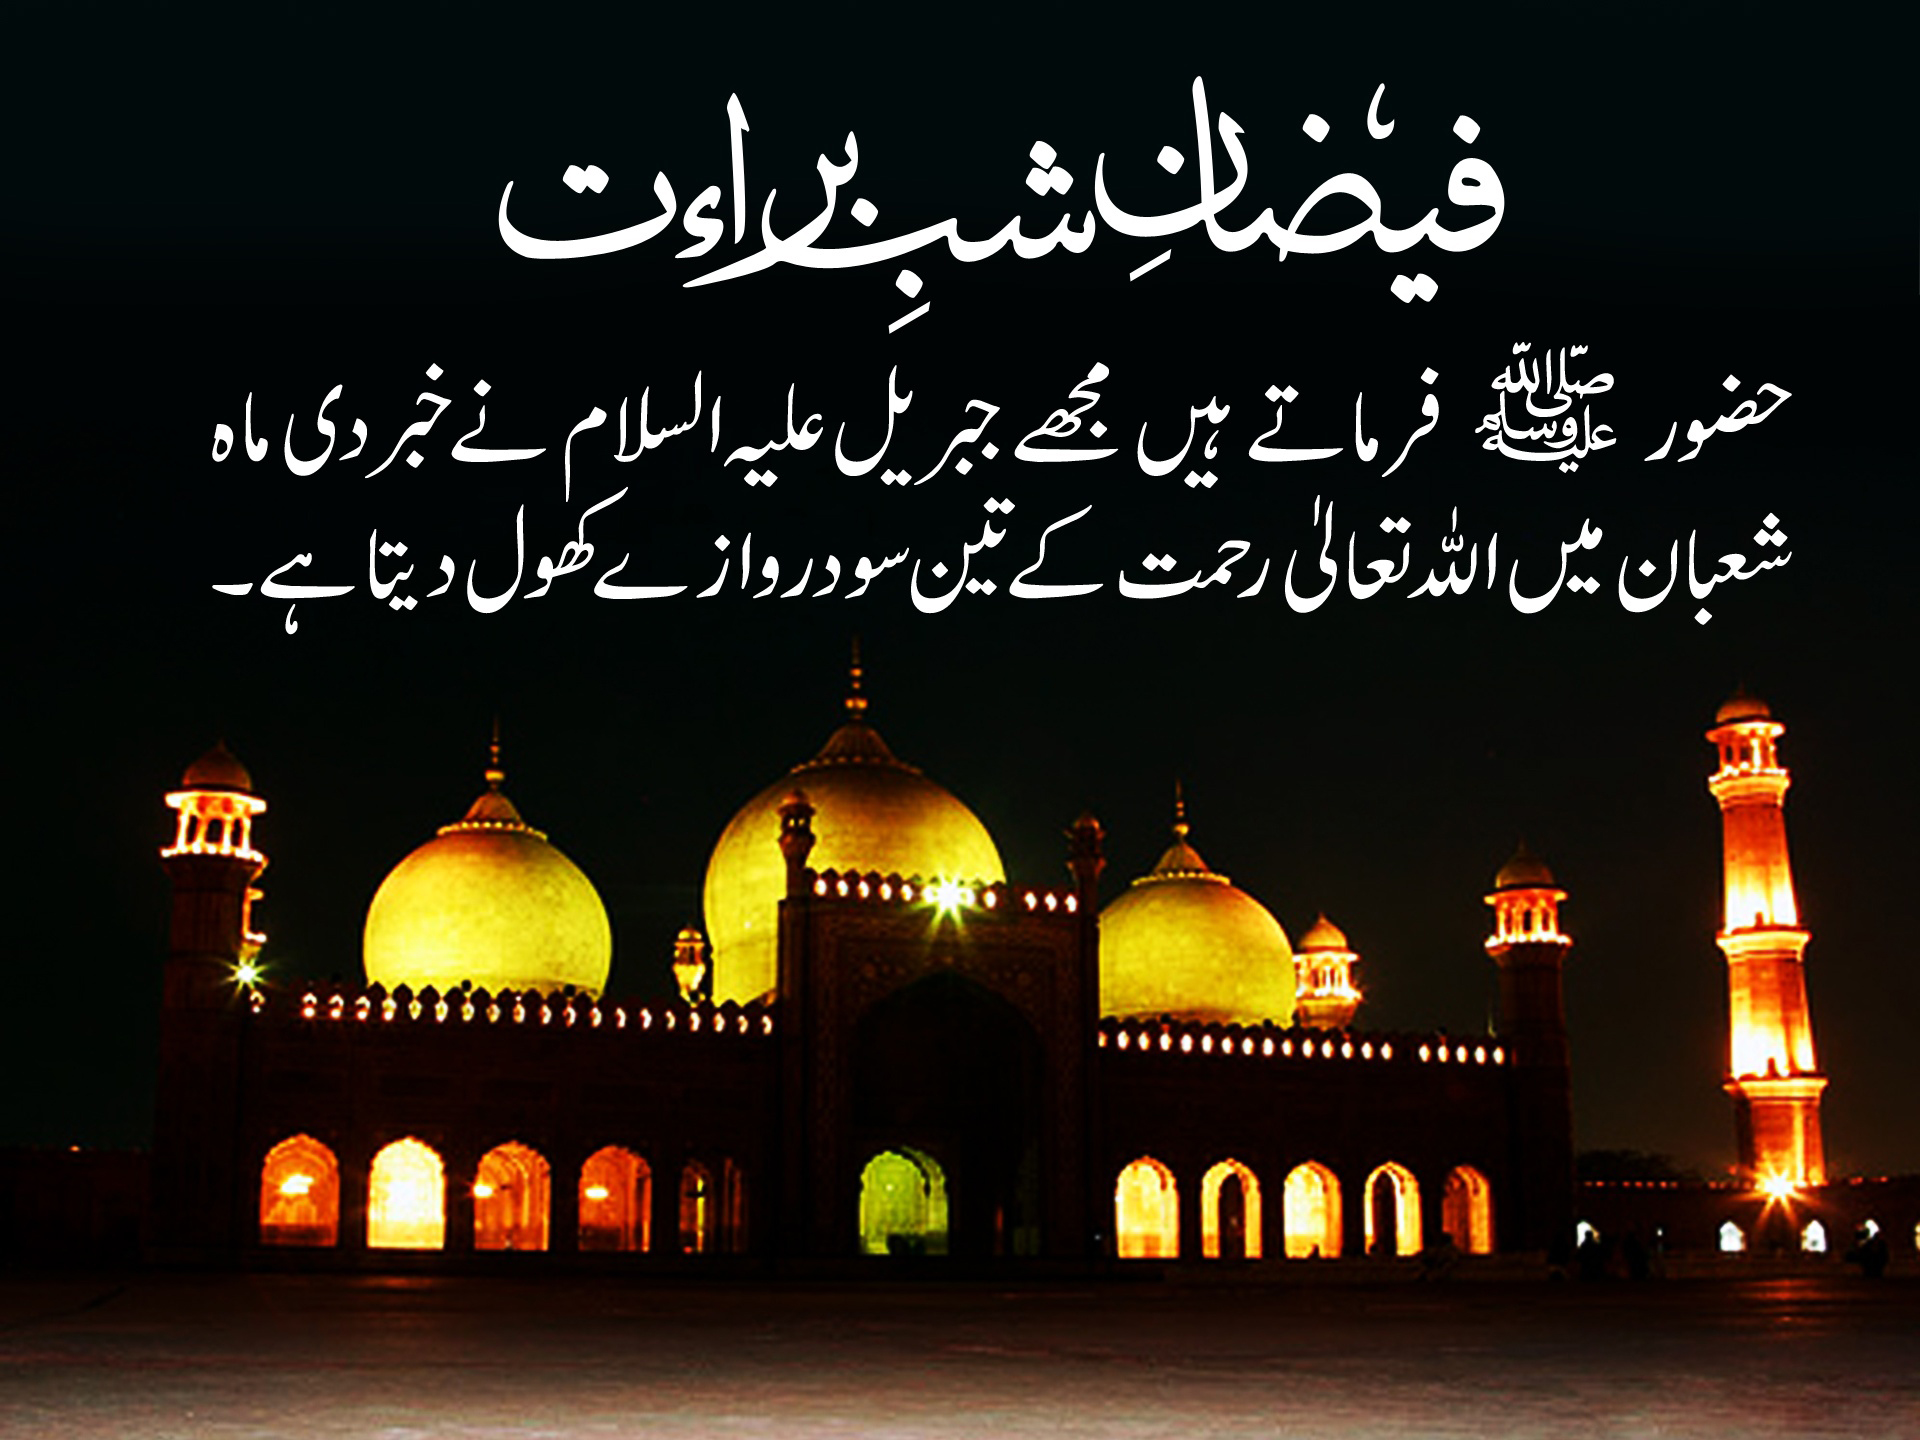 shab e barat wallpapers download